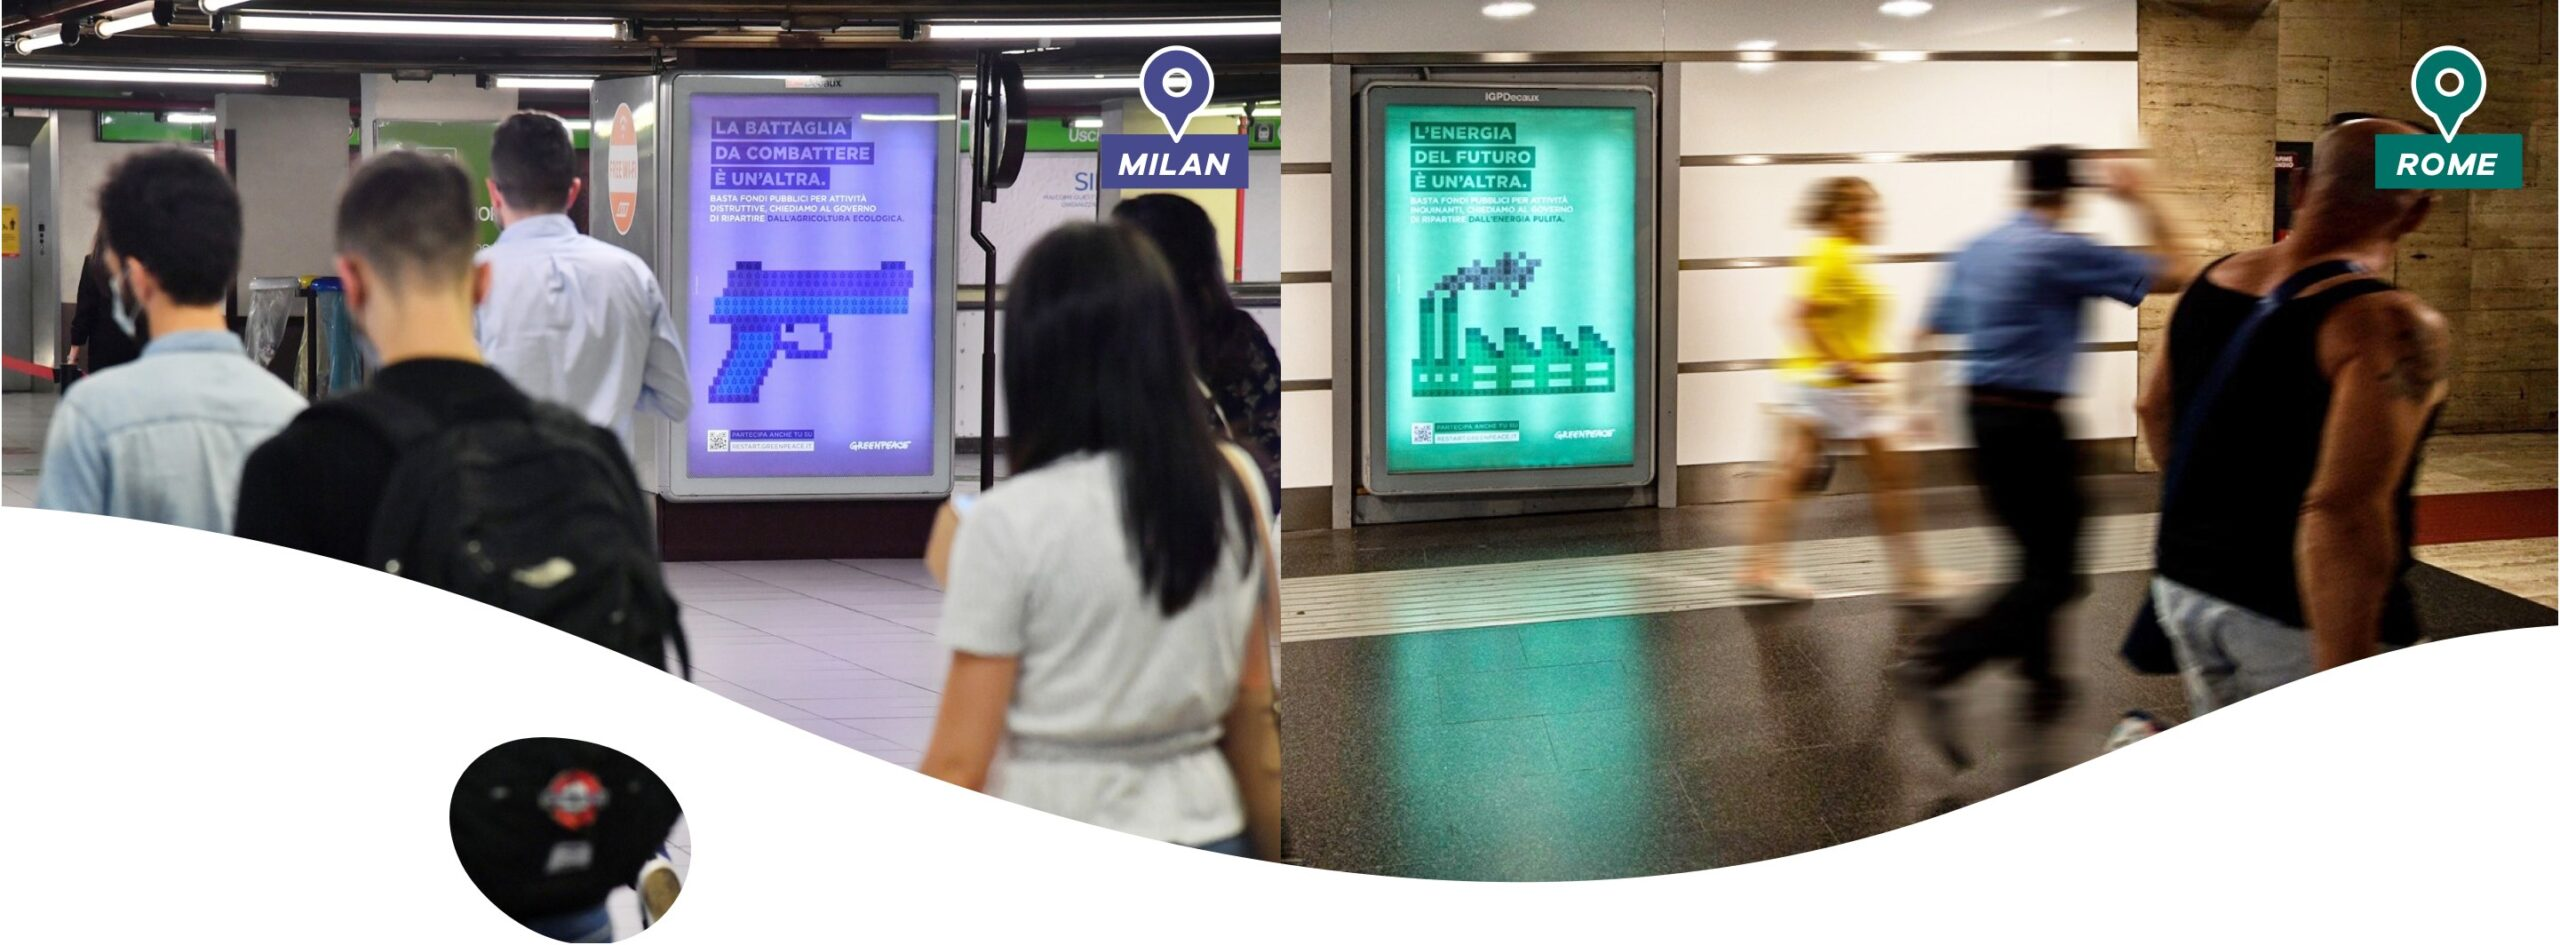 greenpeace campaign on metro in milan and rome